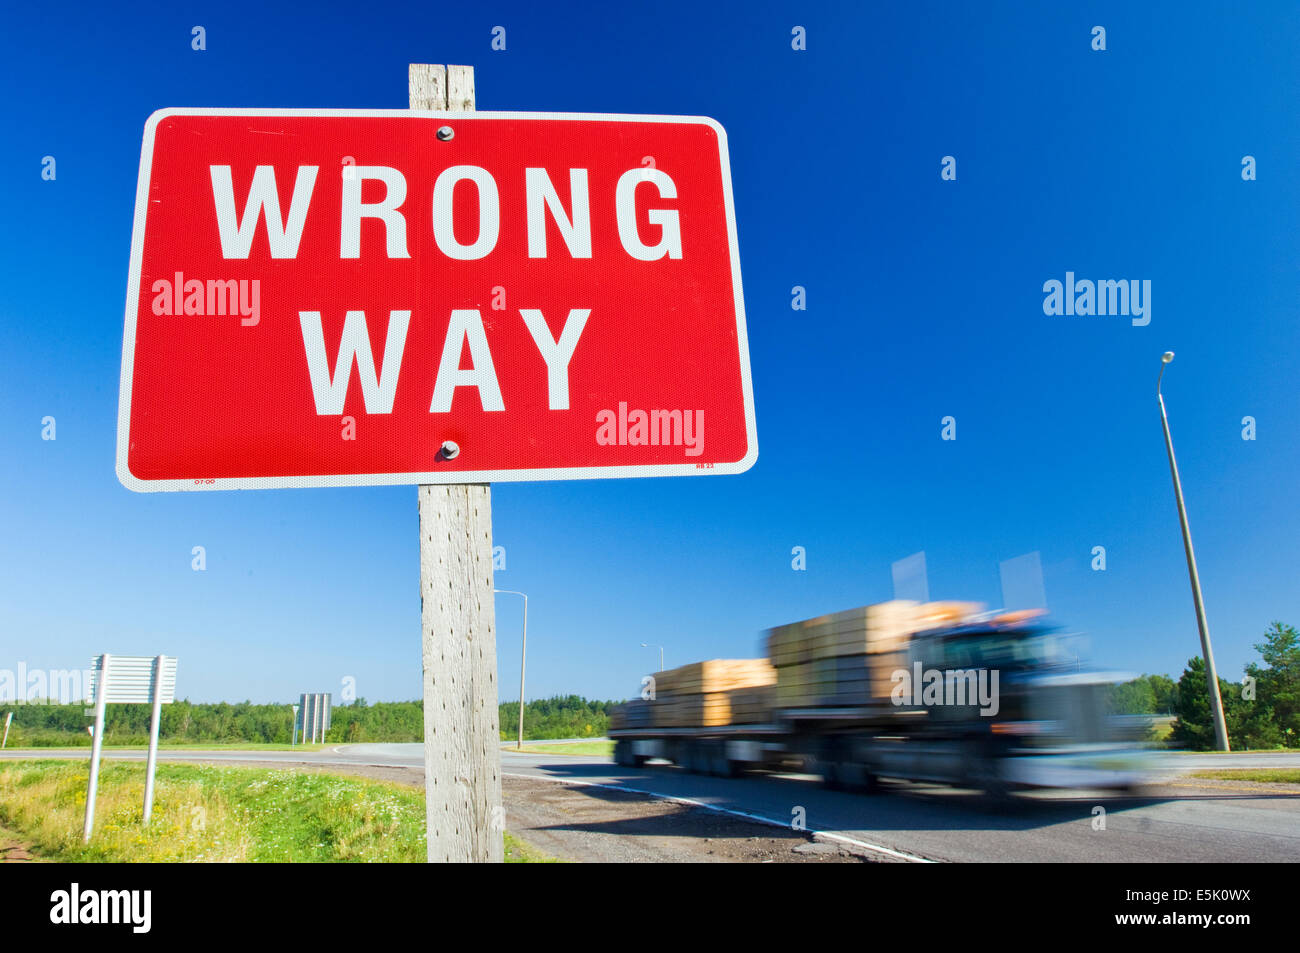 A red Wrong Way road sign against a clear blue sky with a truck approaching on the road - Stock Image